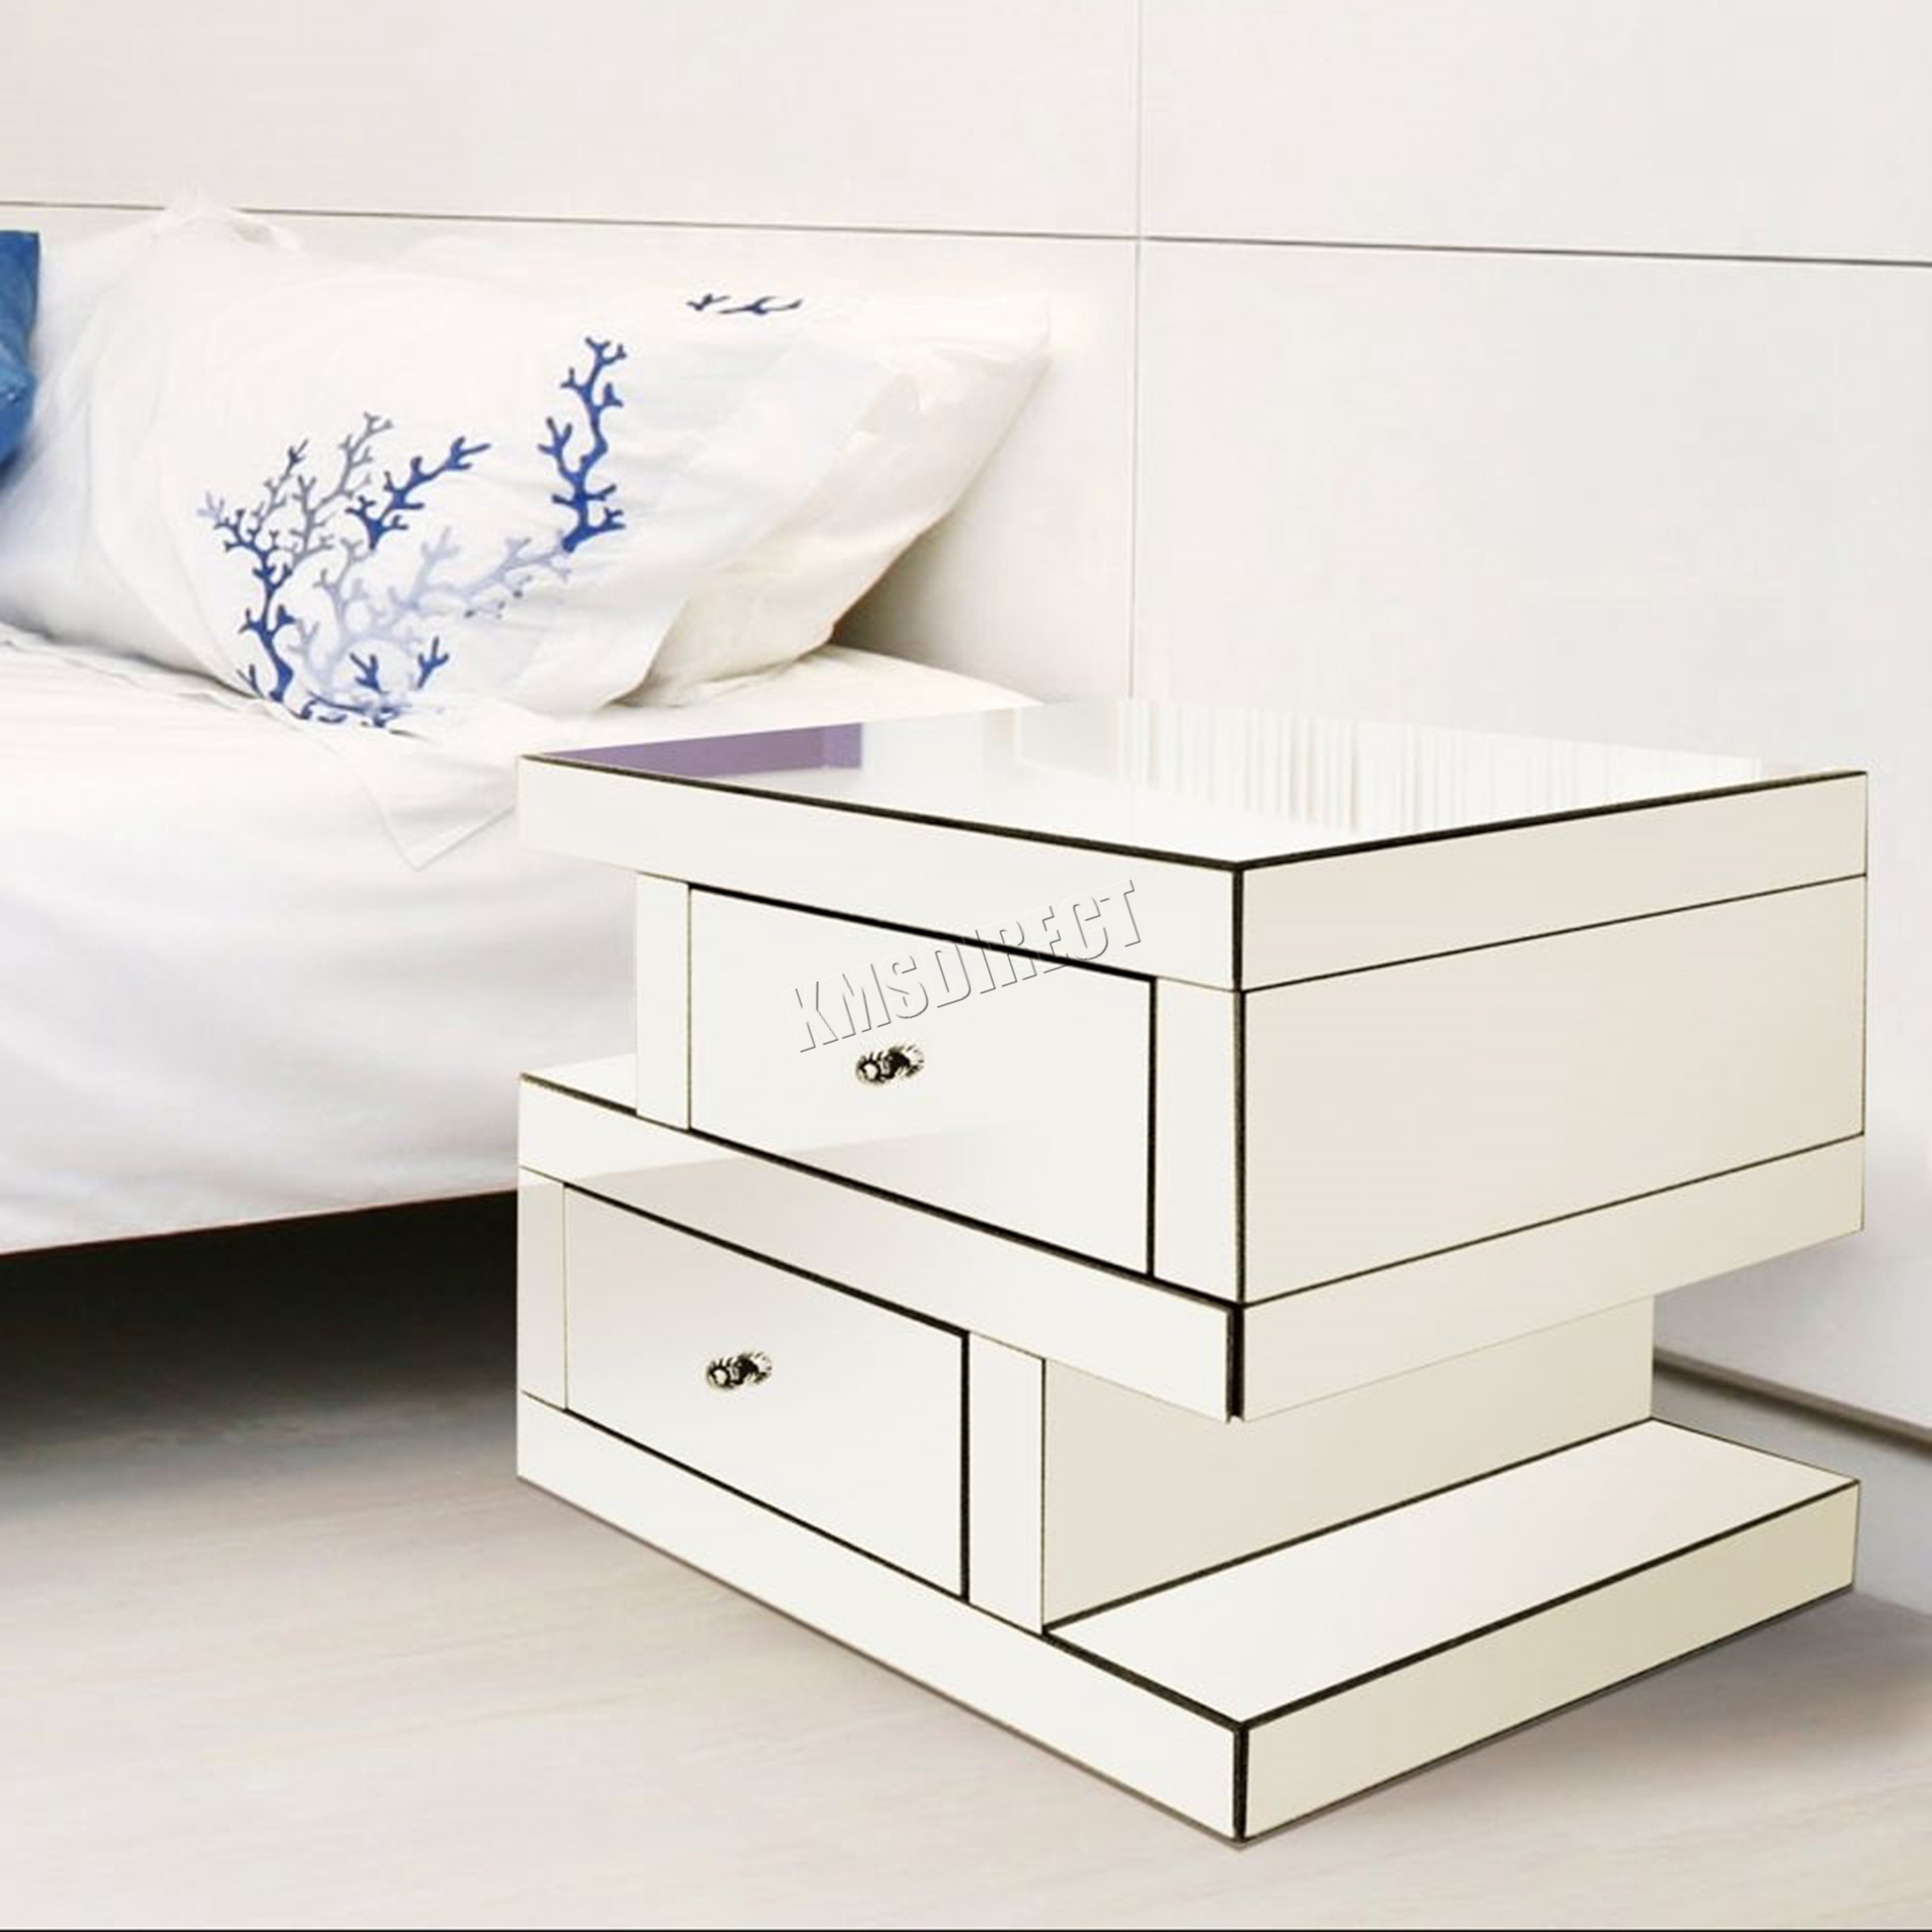 foxhunter mirrored furniture clear glass bedside cabinet 11698 | mirrored side storage table mt04 silver kmswm001